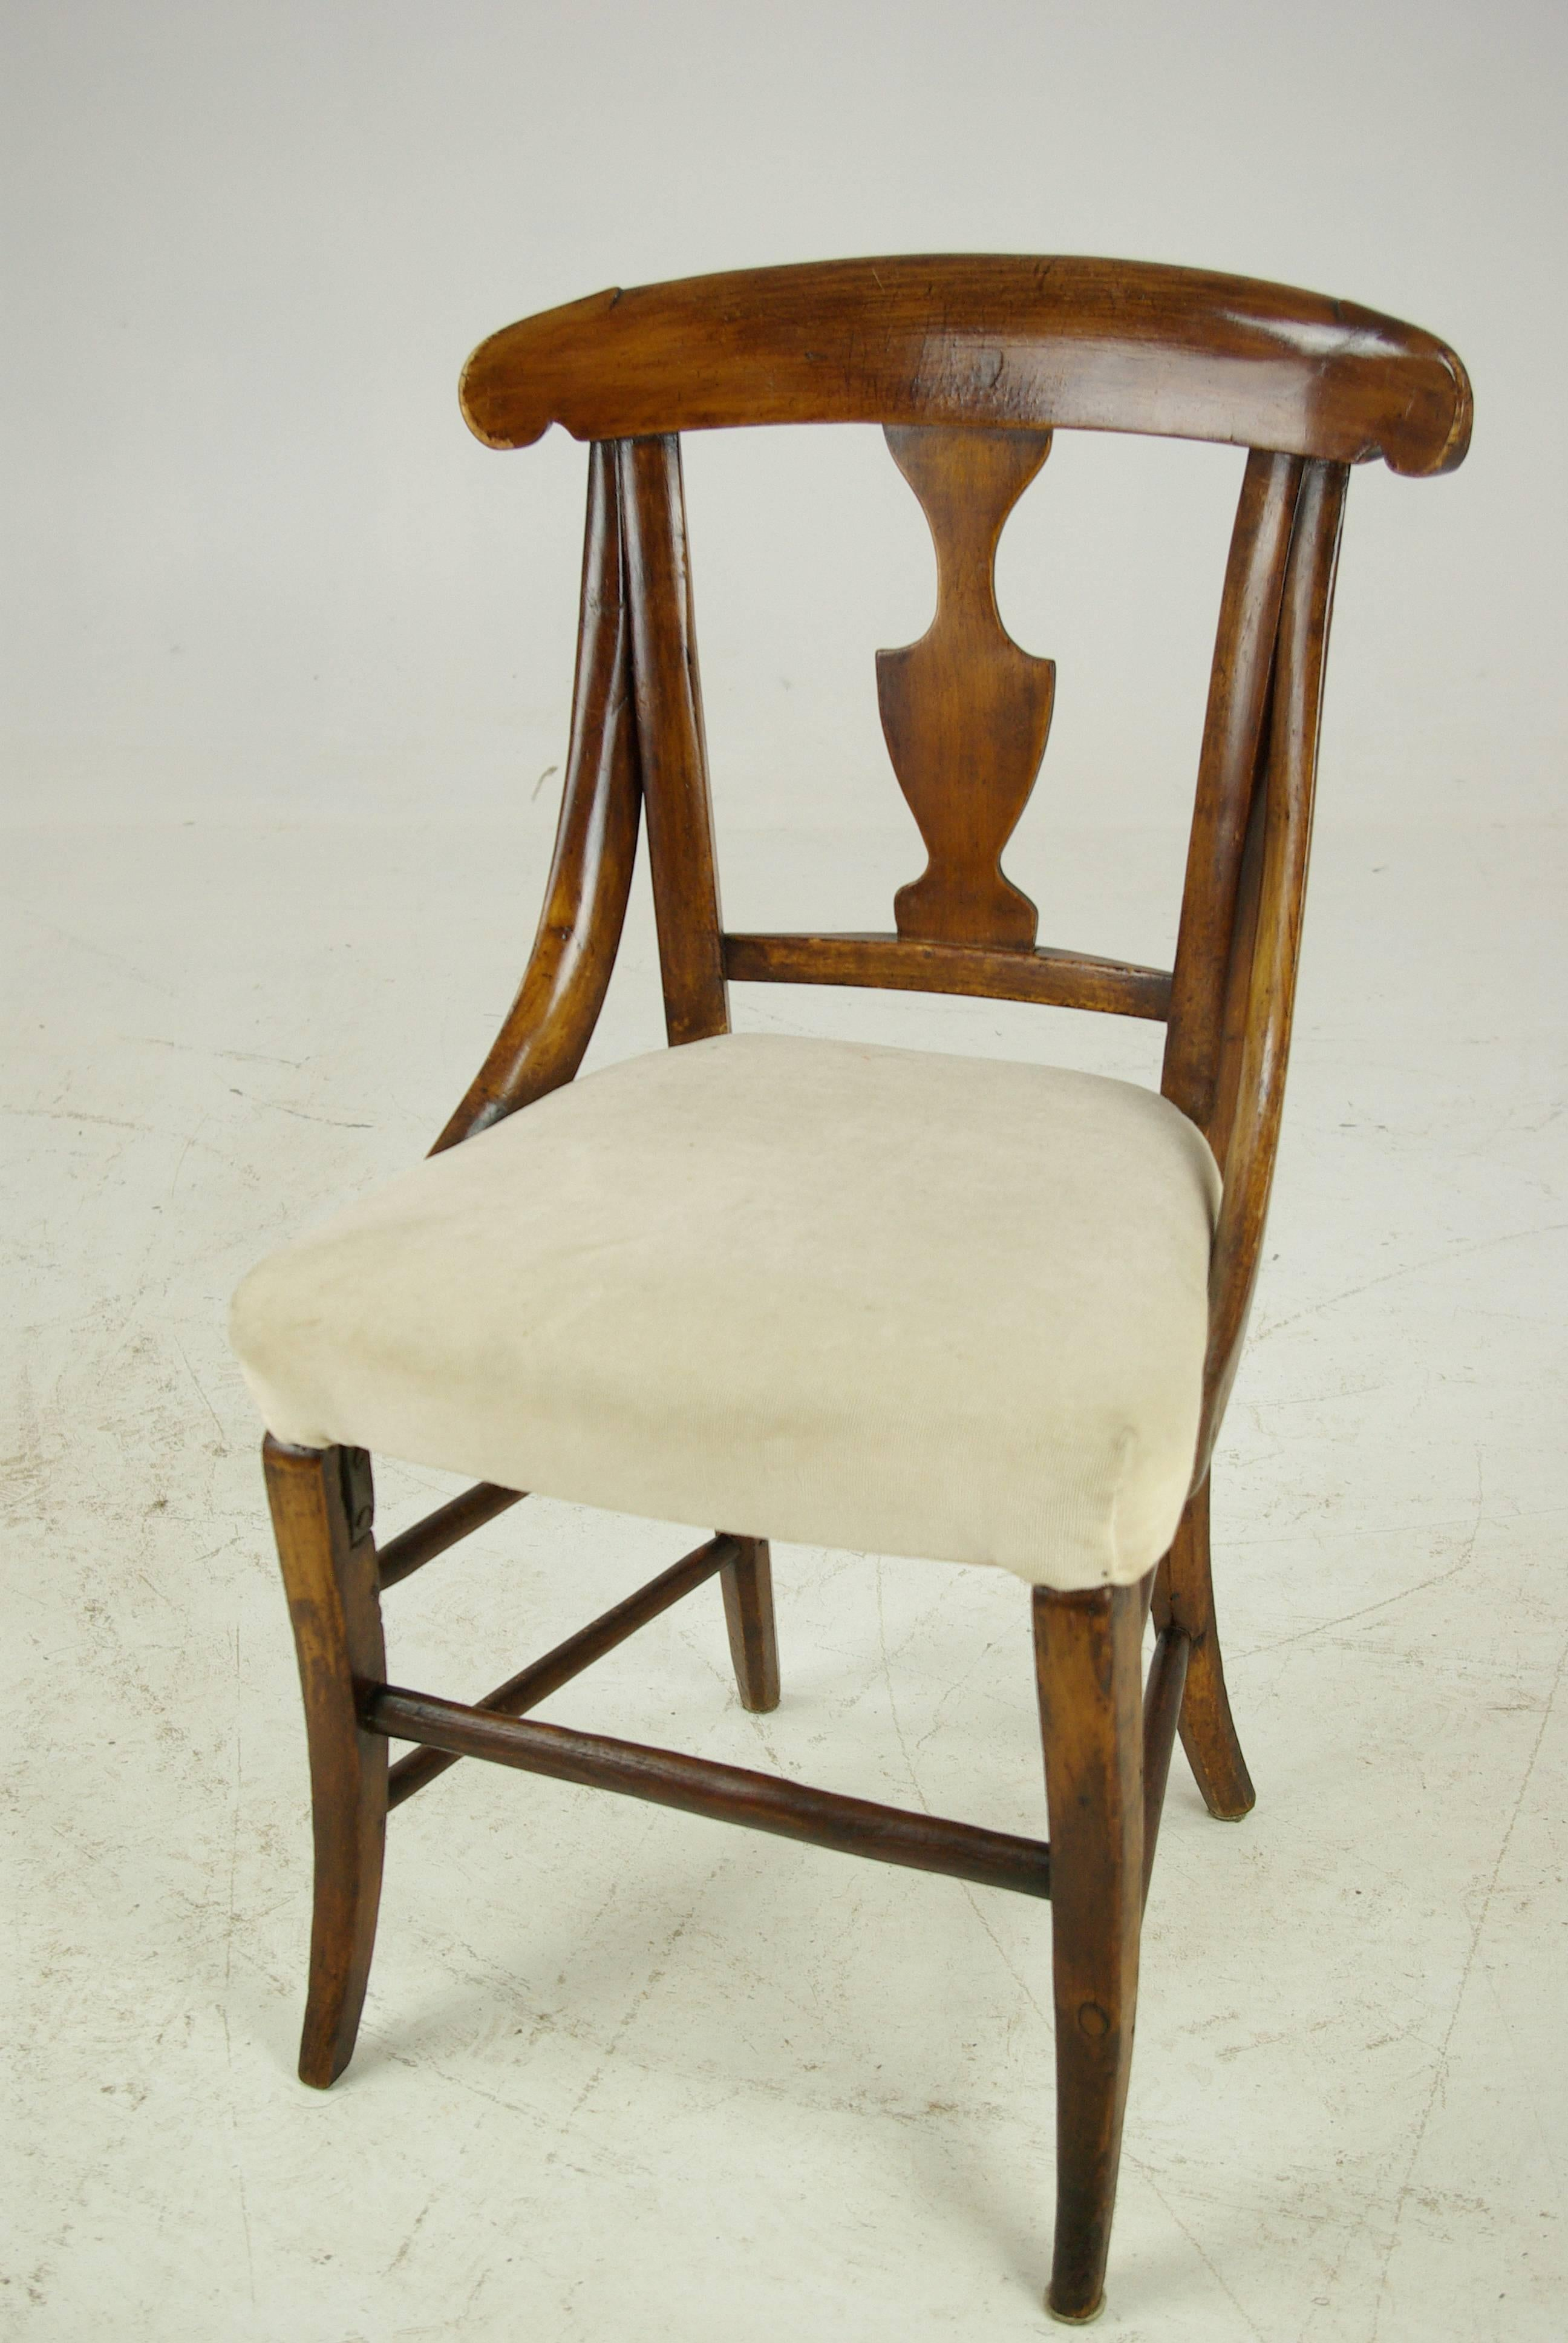 Antique Dolls Chair, Childs Chair, Victorian, Sycamore, Scotland 1880 For